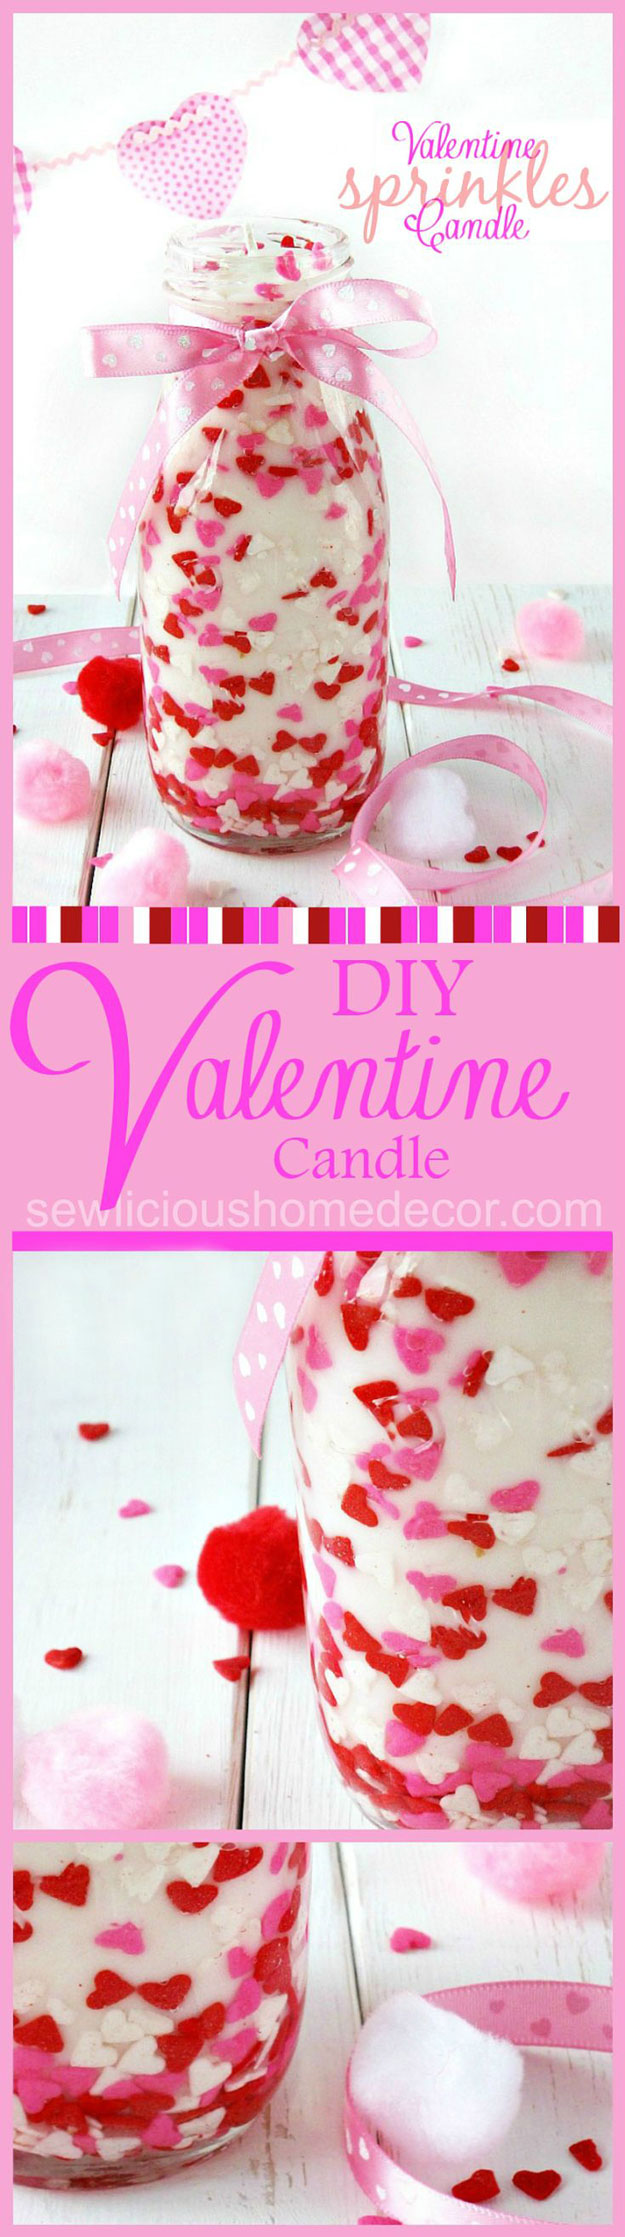 Mason Jar Valentine Gifts and Crafts | DIY Ideas for Valentines Day for Cute Gift Giving and Decor | Valentine Sprinkles Candle Gift | #valentines